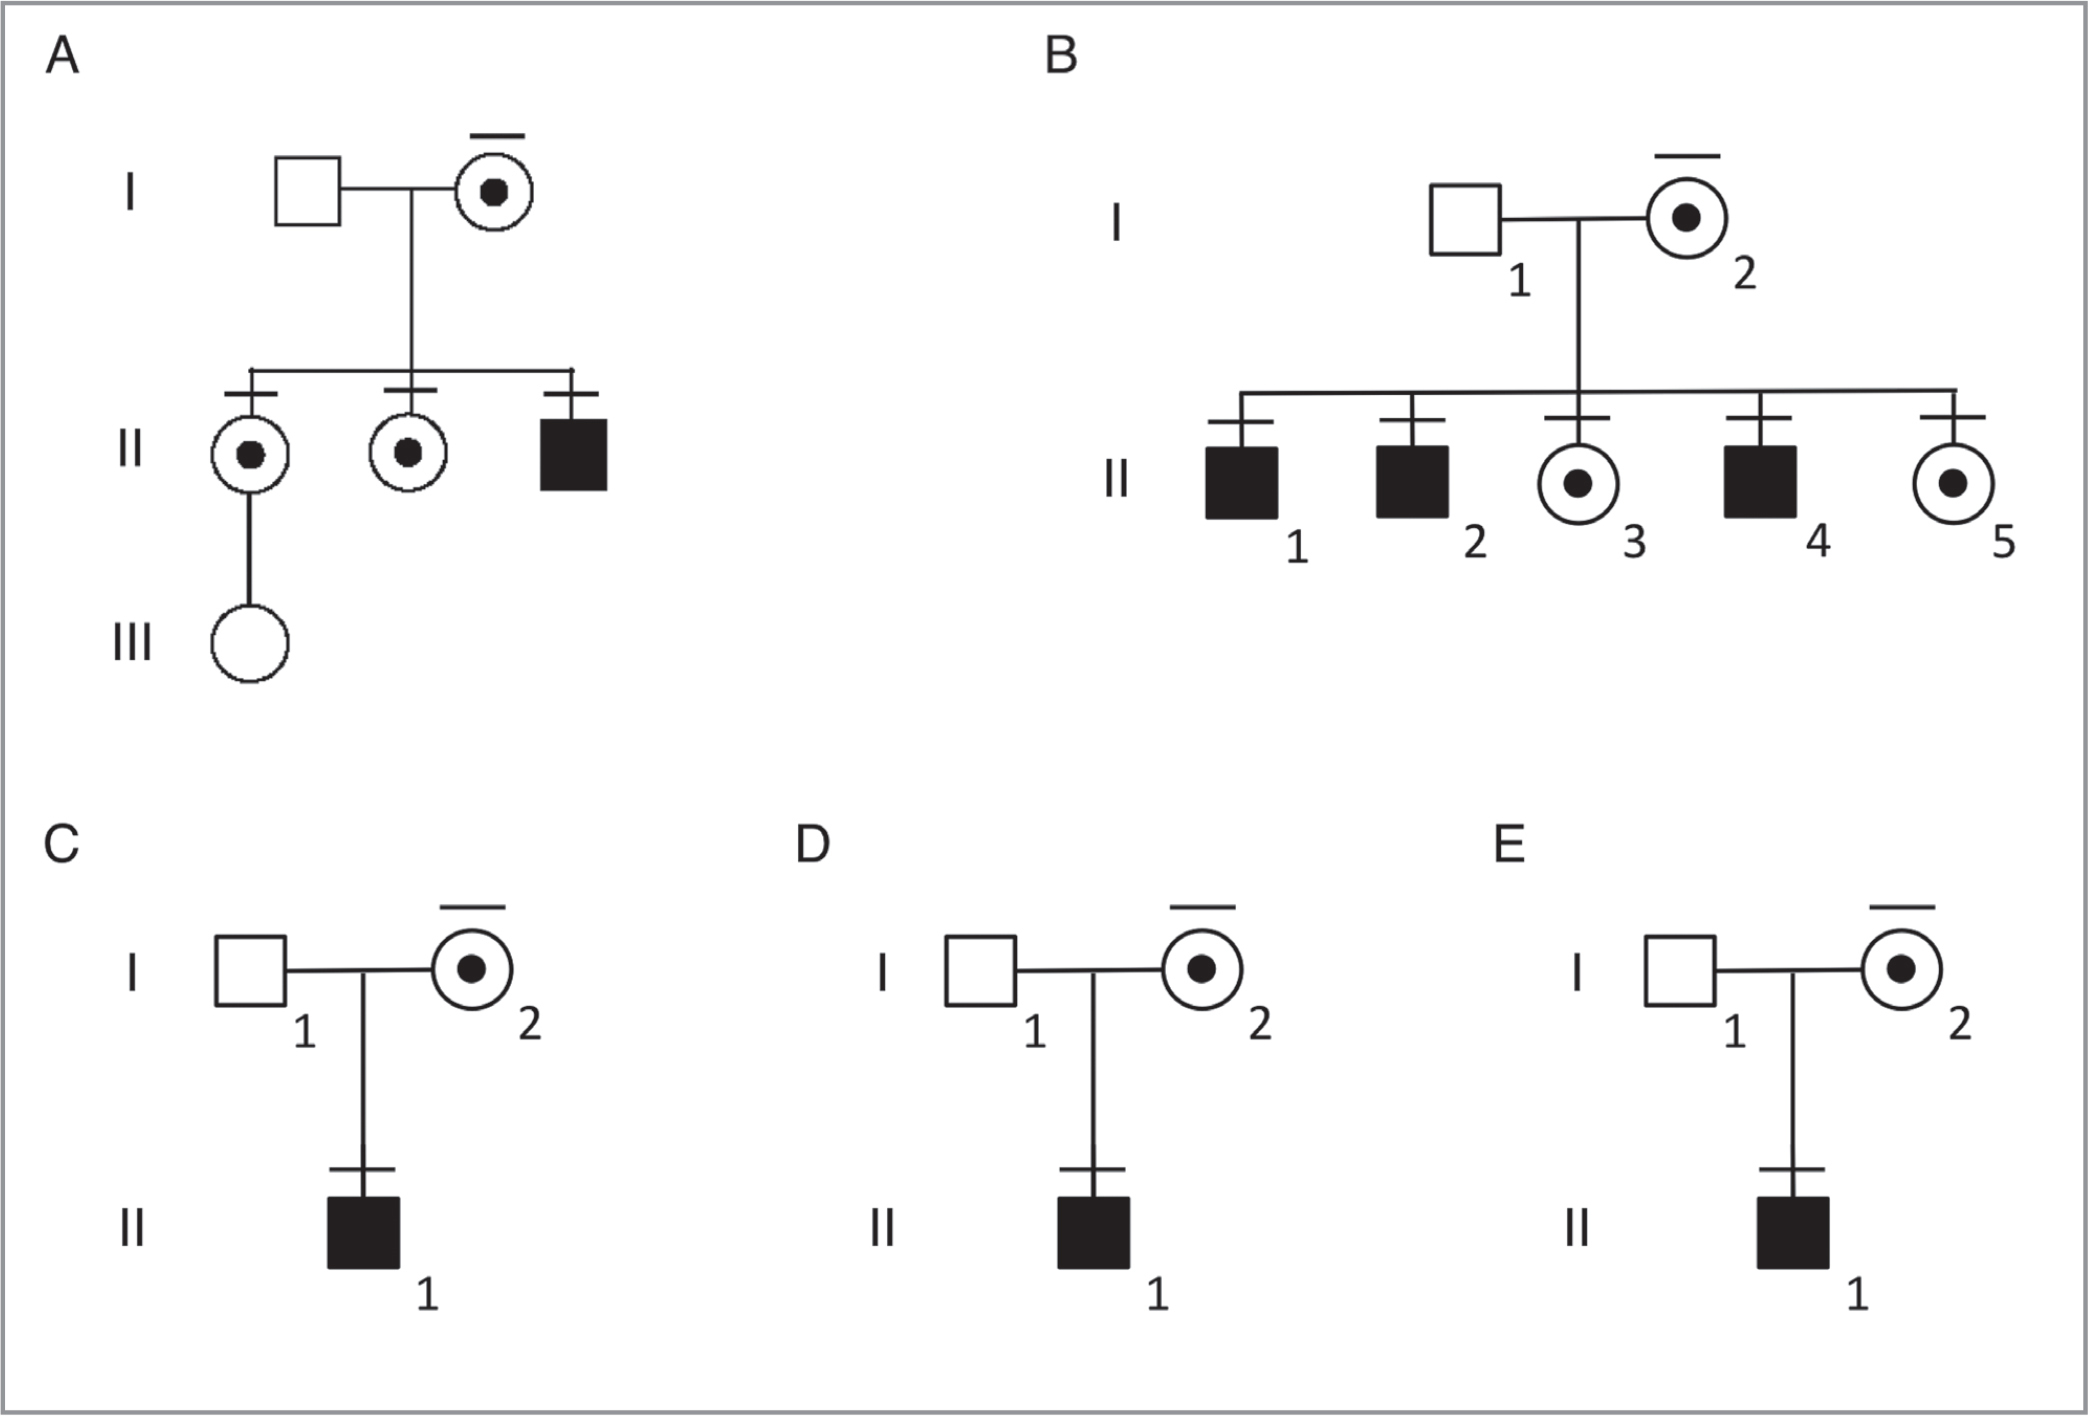 Pedigrees for choroideremia. (A) In the first family, the mother (I-2) and two daughters (II-1 and II-2) are carriers of the mutation in the CHM gene located on the X chromosome and display pigmented streaks upon fundus examination. The son (II-3) is hemizygous for the CHM mutation and has clinical manifestation of the choroideremia phenotype. The only granddaughter is unaffected (III-1). (B) A second family has a mother (I-2) that is a carrier of the mutation in CHM with pigmented streaks and has passed on the carrier status and the pigmentation phenotype to her daughters (II-3 and II-5) and the choroideremia phenotype to each of her three sons (II-1, II-2, and II-4). (C–E) Three additional families also have a mother (I-2) that is a carrier for the CHM mutation and displays the pigmentation carrier phenotype. Each of the sons display the clinical choroideremia phenotype and disease pathology (II-1). Squares = males; circles = females; open symbols = unaffected; filled symbols = affected; circles with black dot and bar = female carriers with pigmented streaks in the retina